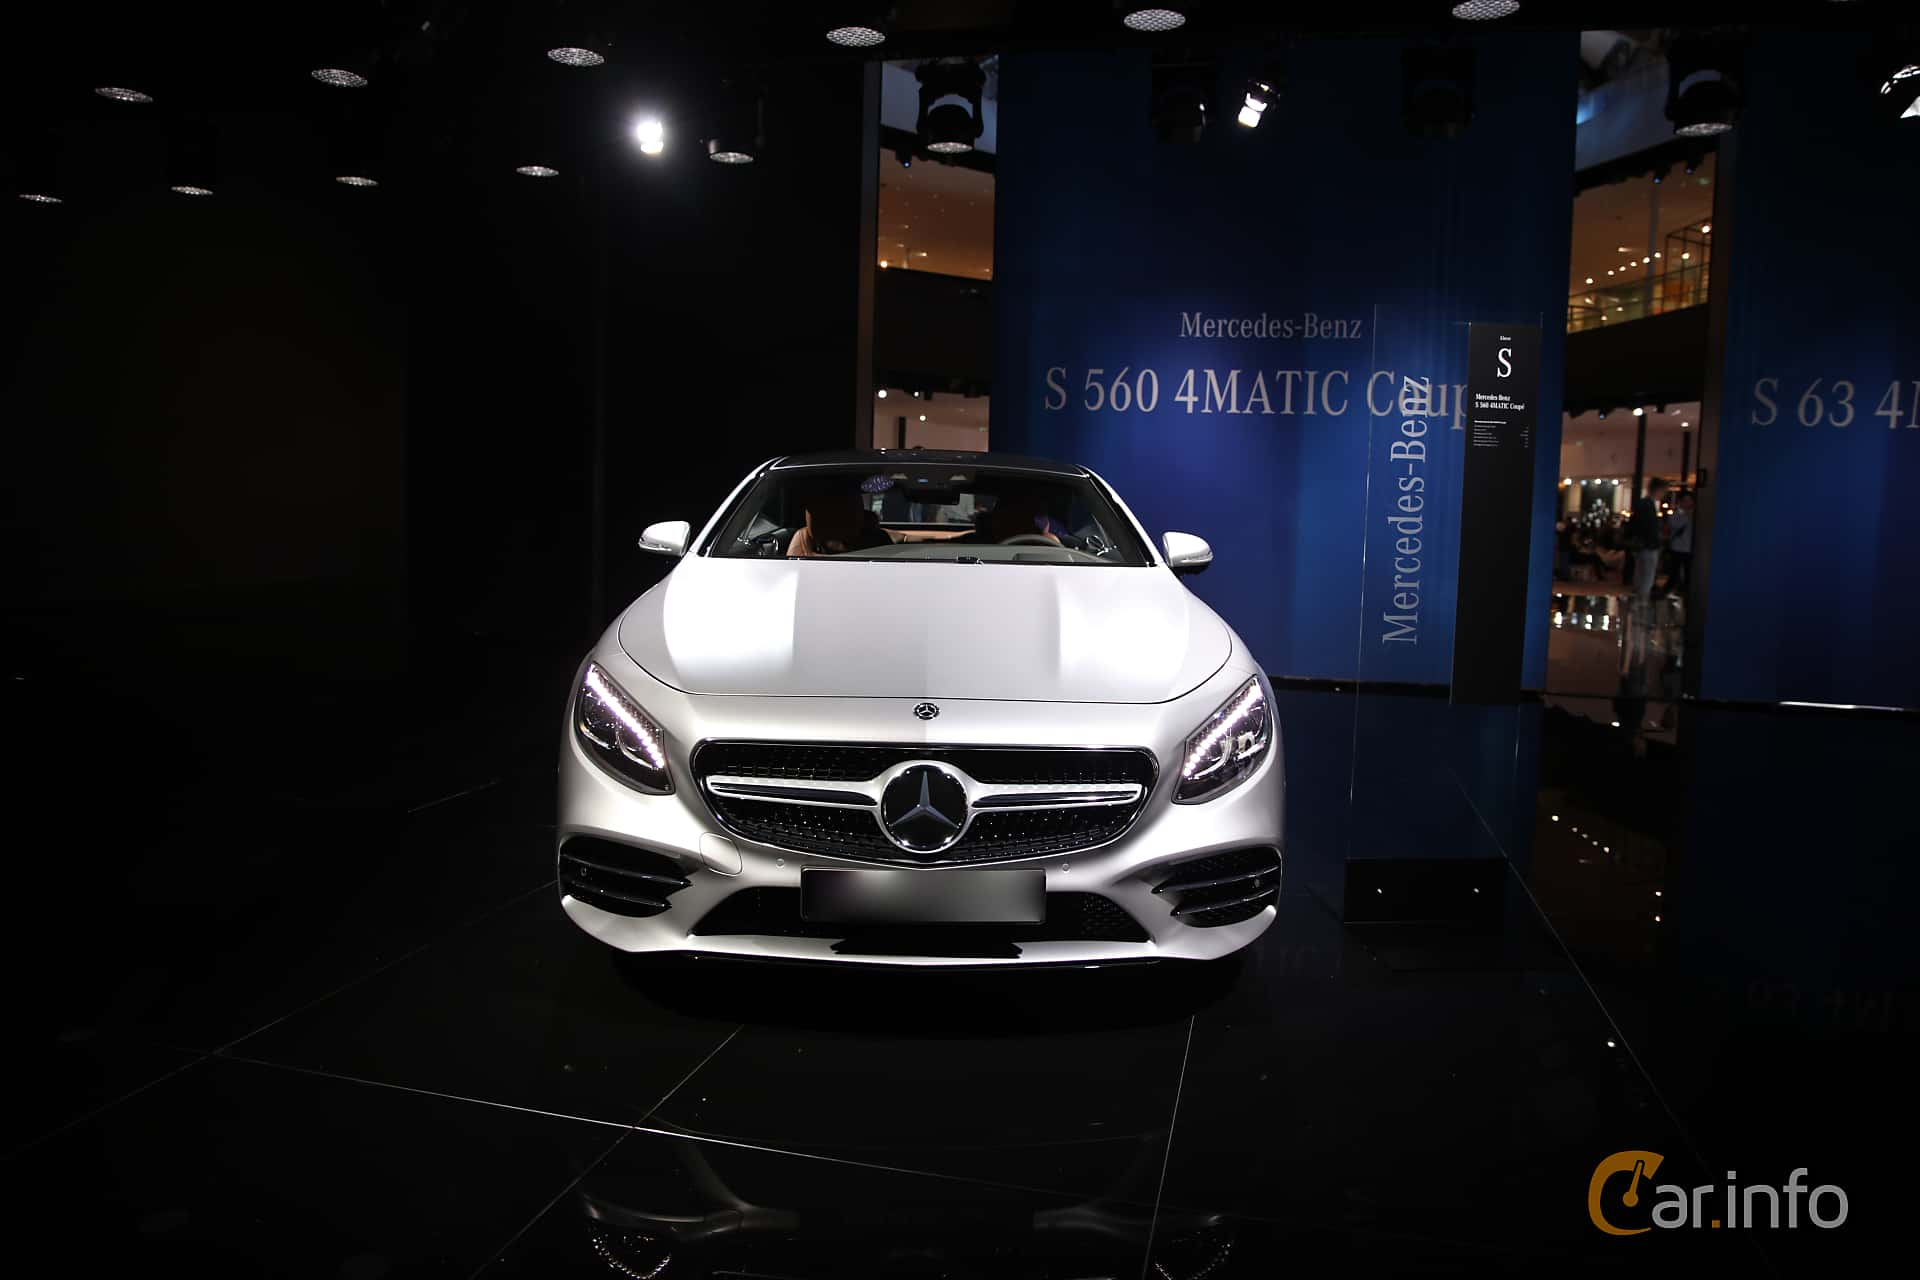 Front  of Mercedes-Benz S 560 4MATIC Coupé  9G-Tronic, 469ps, 2018 at IAA 2017